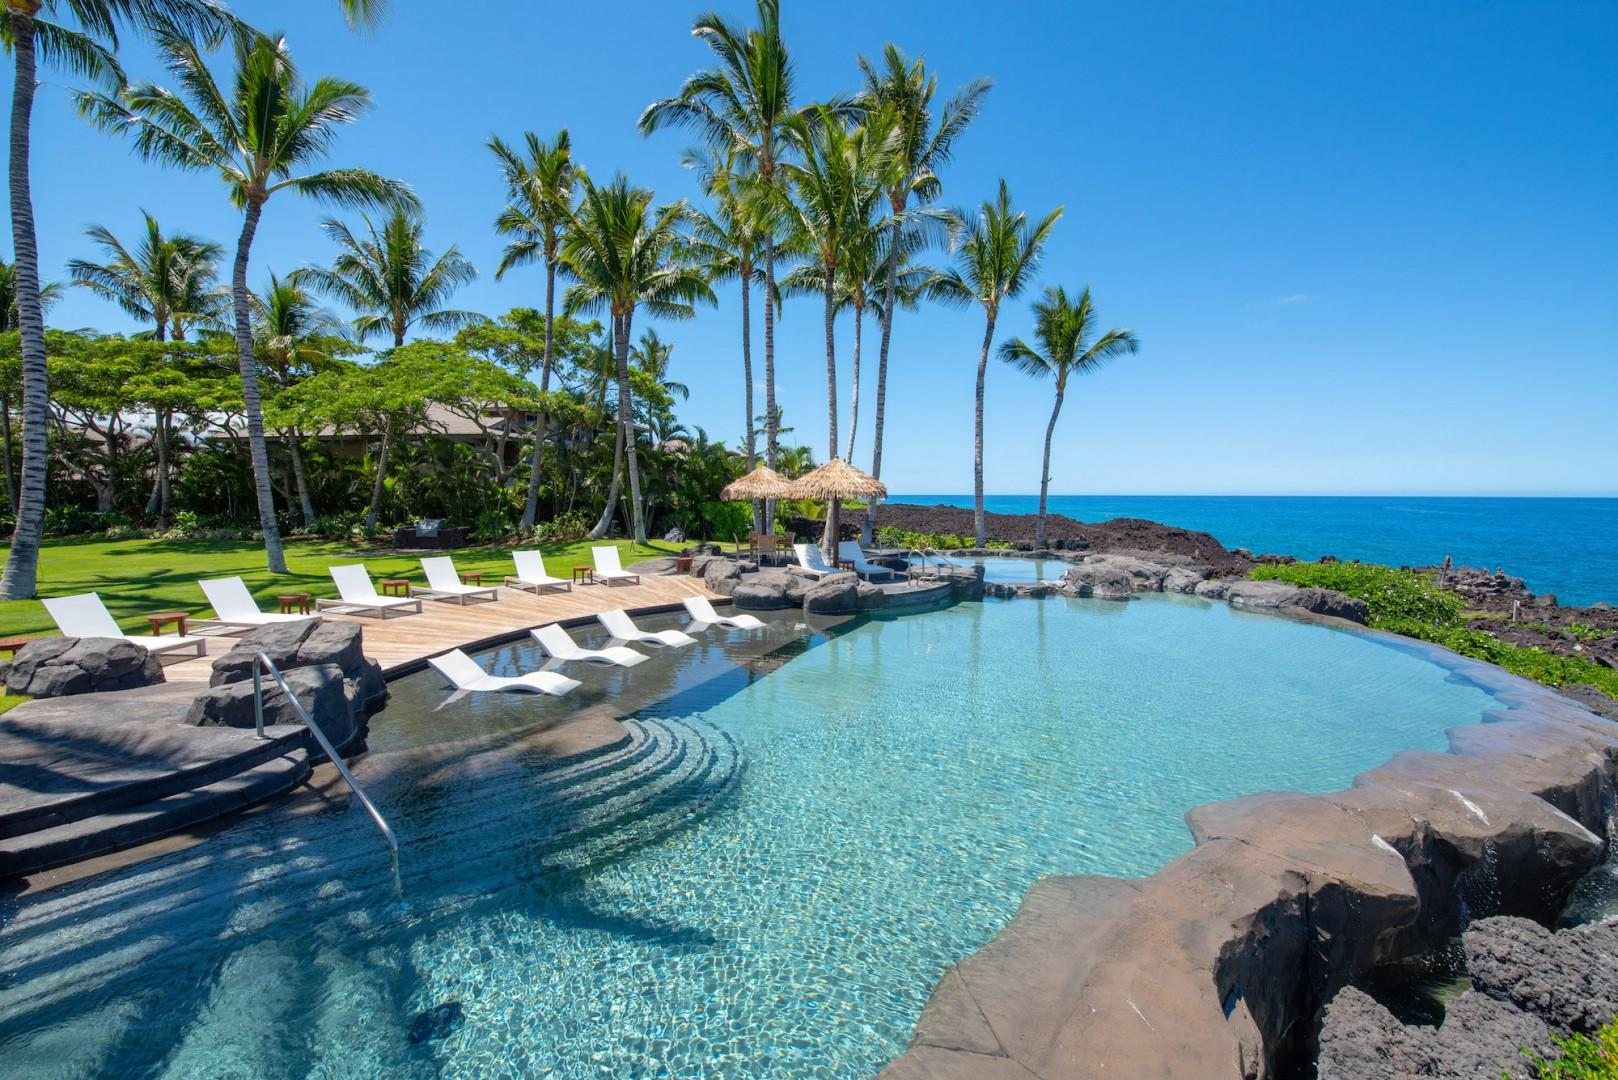 The Grotto Amenity Center Infinity Pool at the Seacliff's Edge